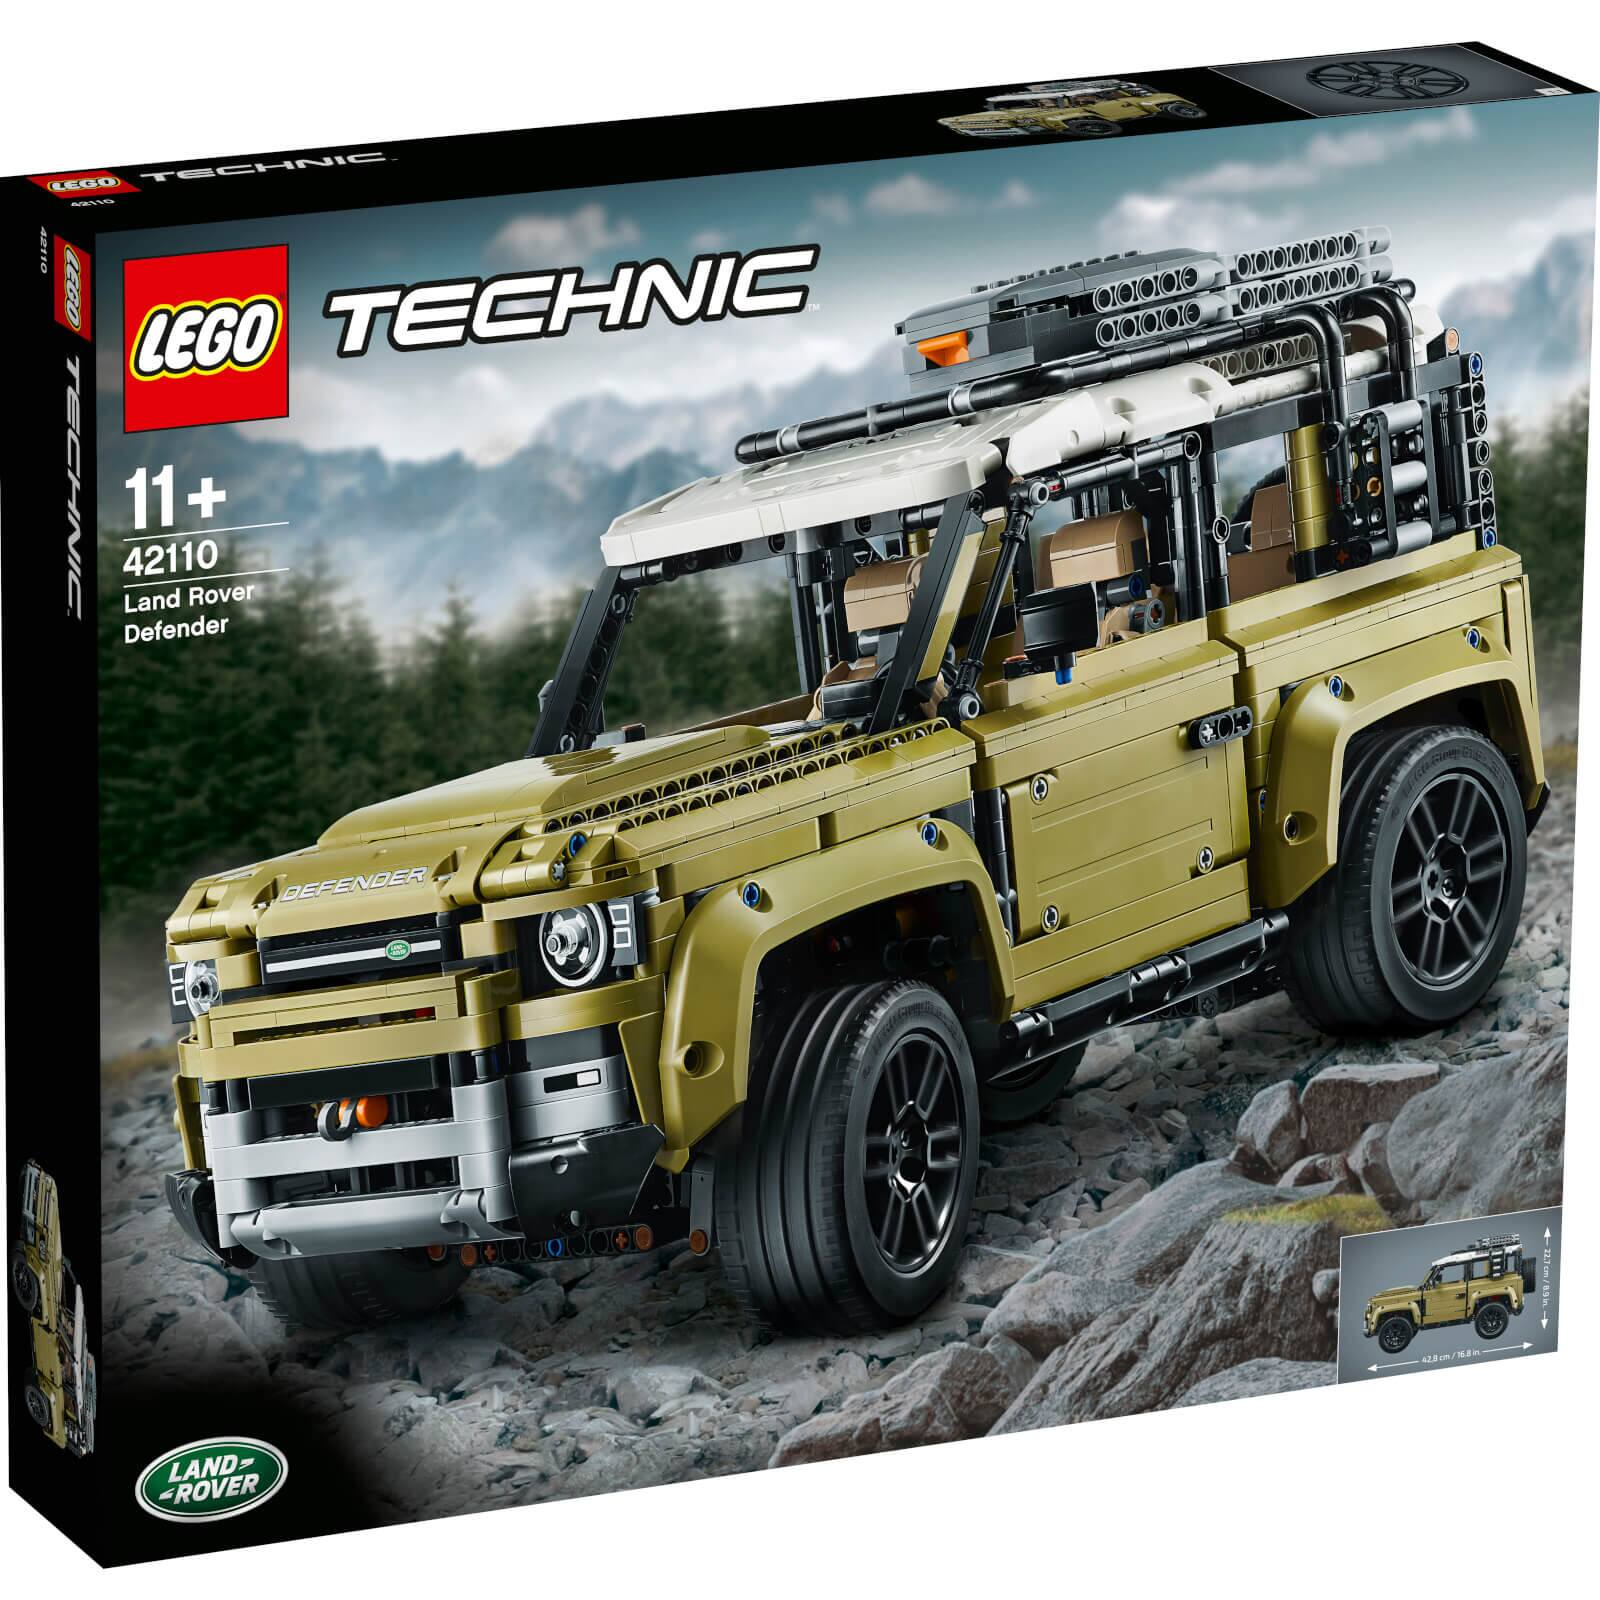 2573-Piece LEGO Technic: Land Rover Defender Building Set